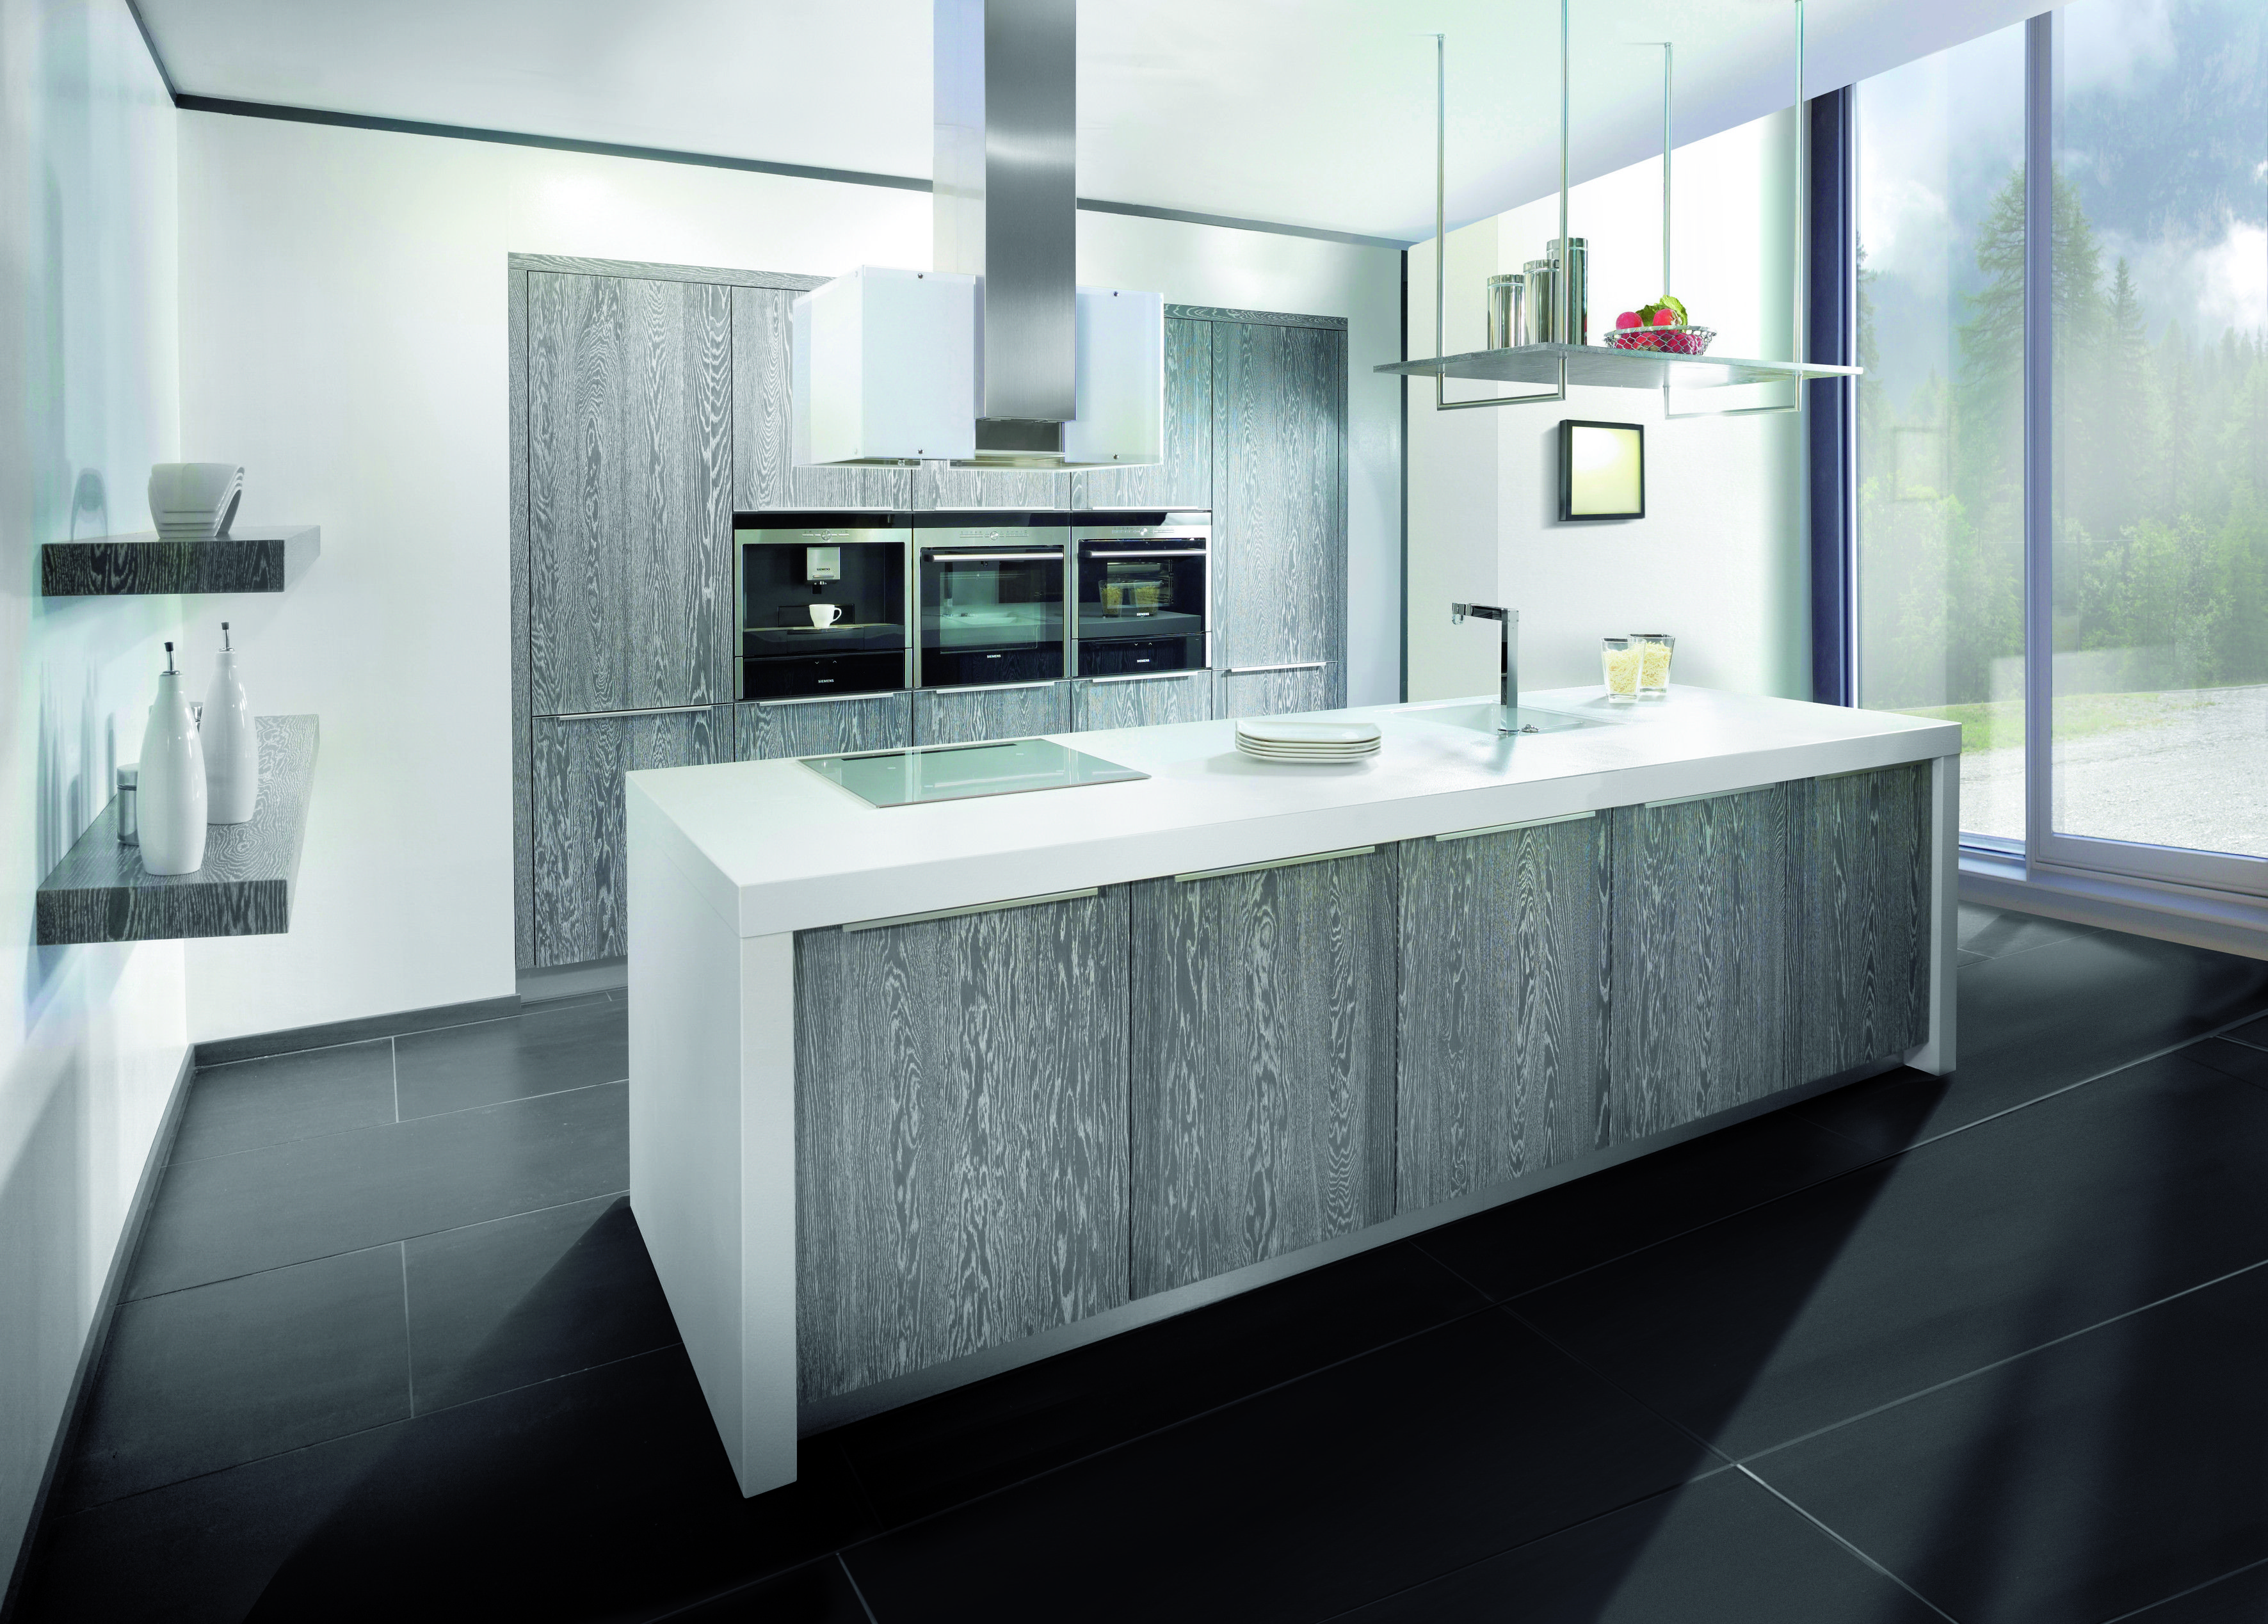 holzk che eiche platin oster m belkollektion gmbh exclusive kitchens pinterest holzk che. Black Bedroom Furniture Sets. Home Design Ideas